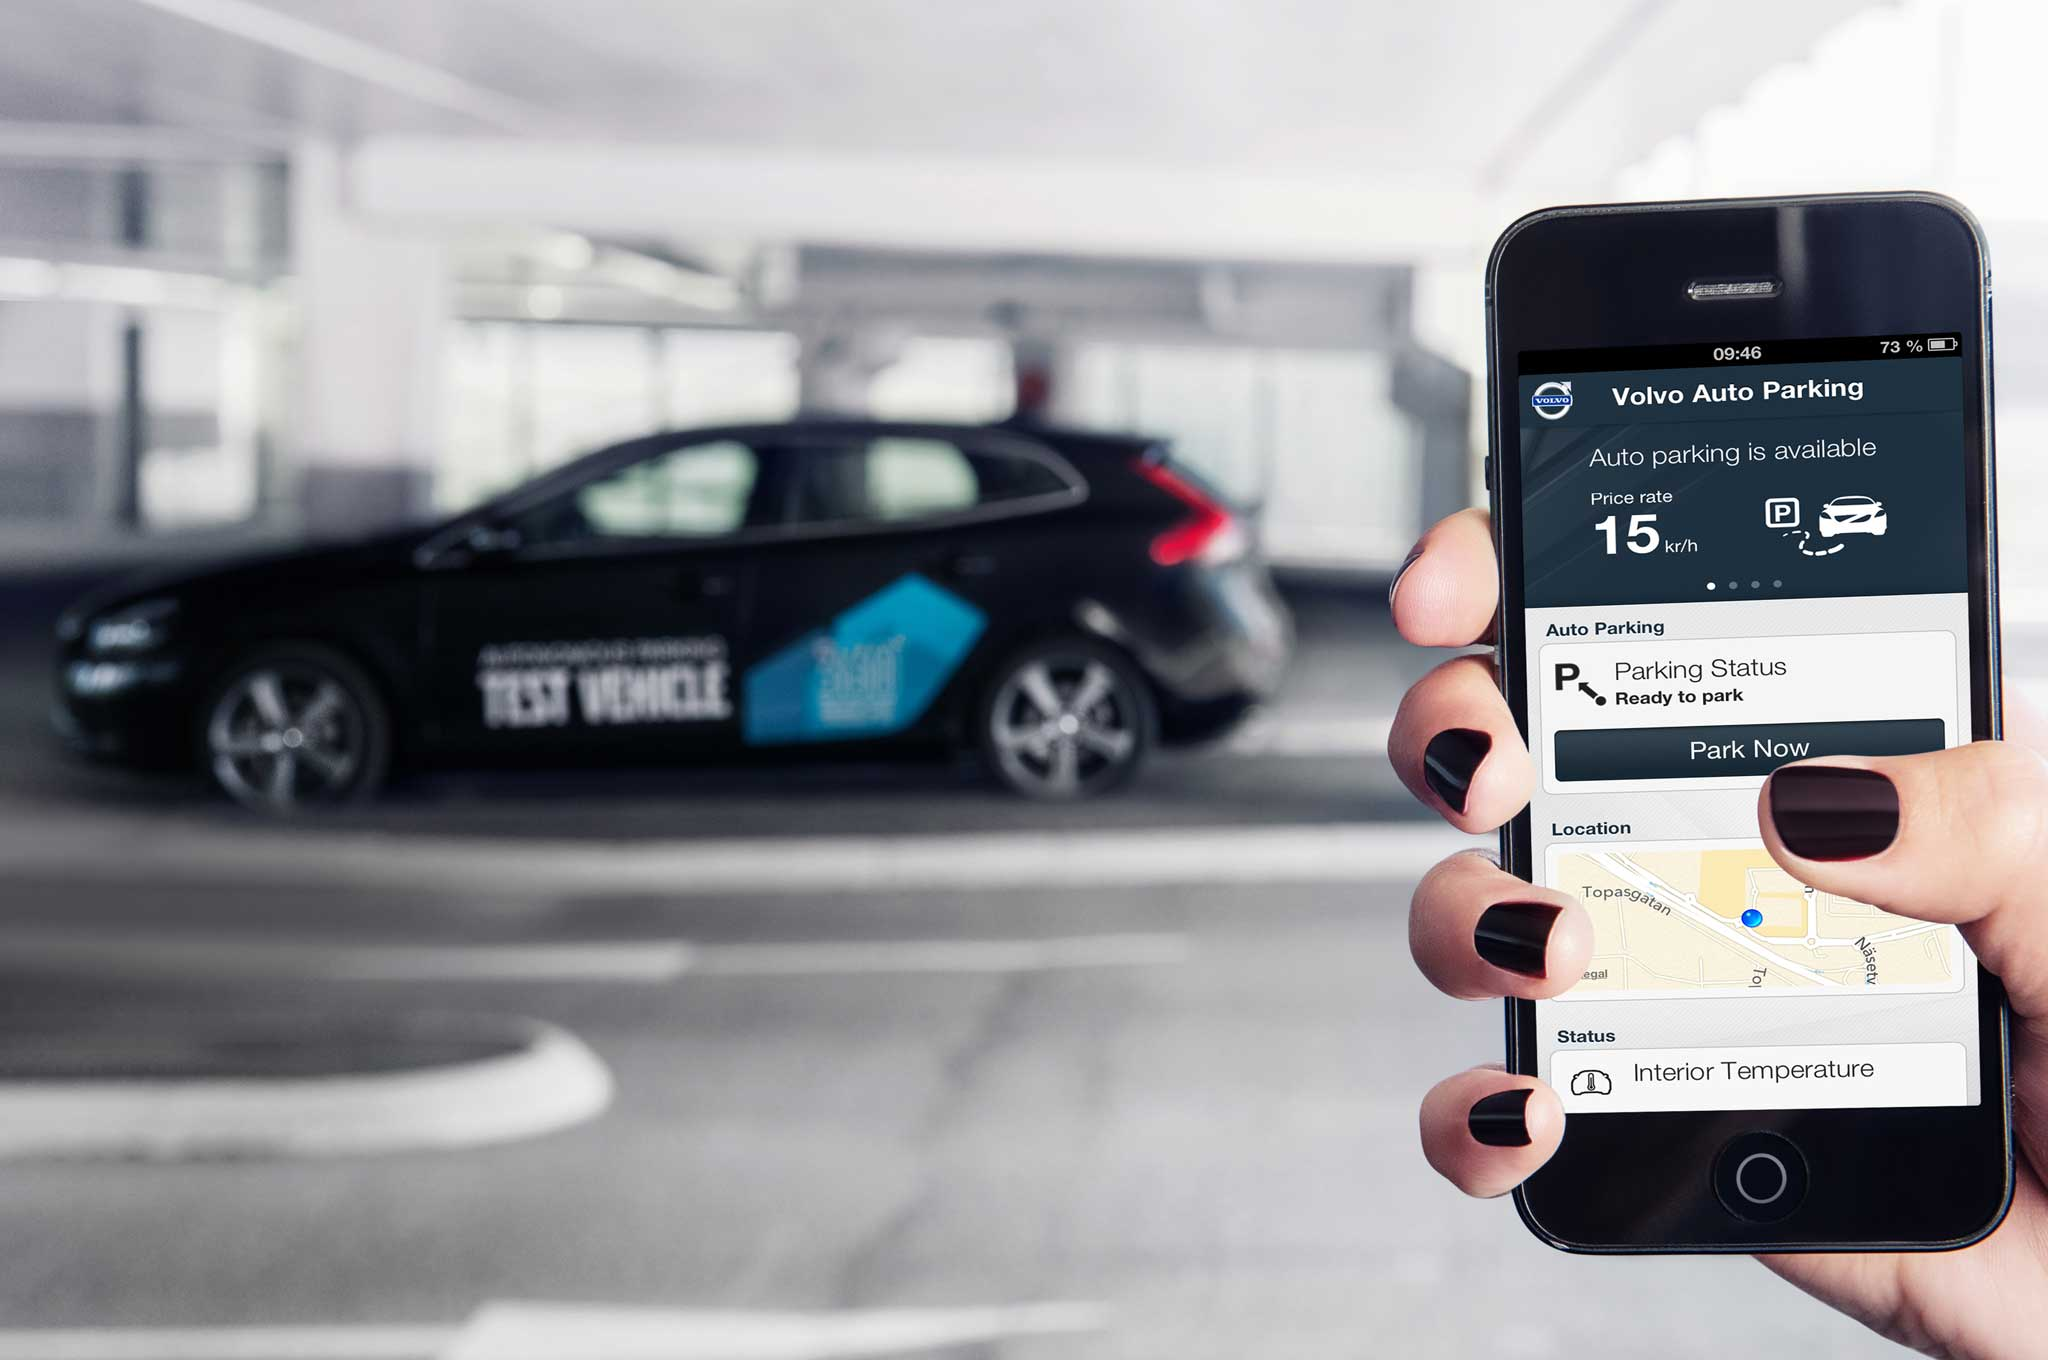 Volvo V40 Self Parking With Smartphone1